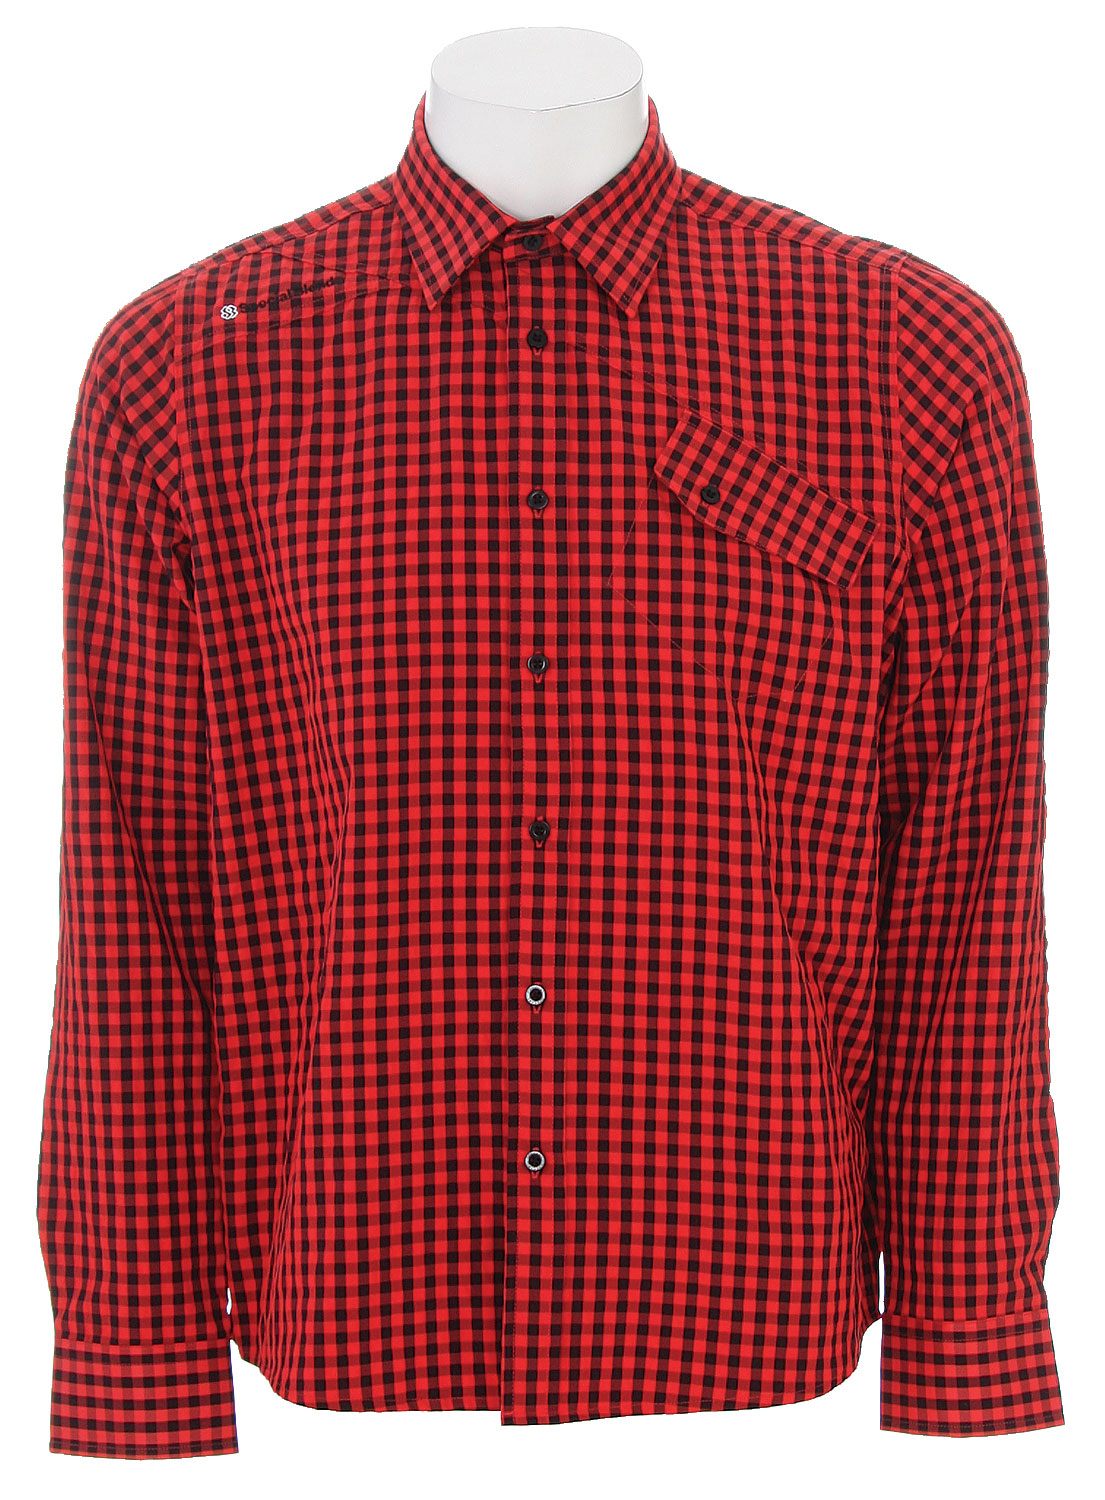 Entertainment The Special Blend Dress Up Shirt - Small Gingham / Wicking Properties / 62% Polyester, 38% Nylon - $20.95